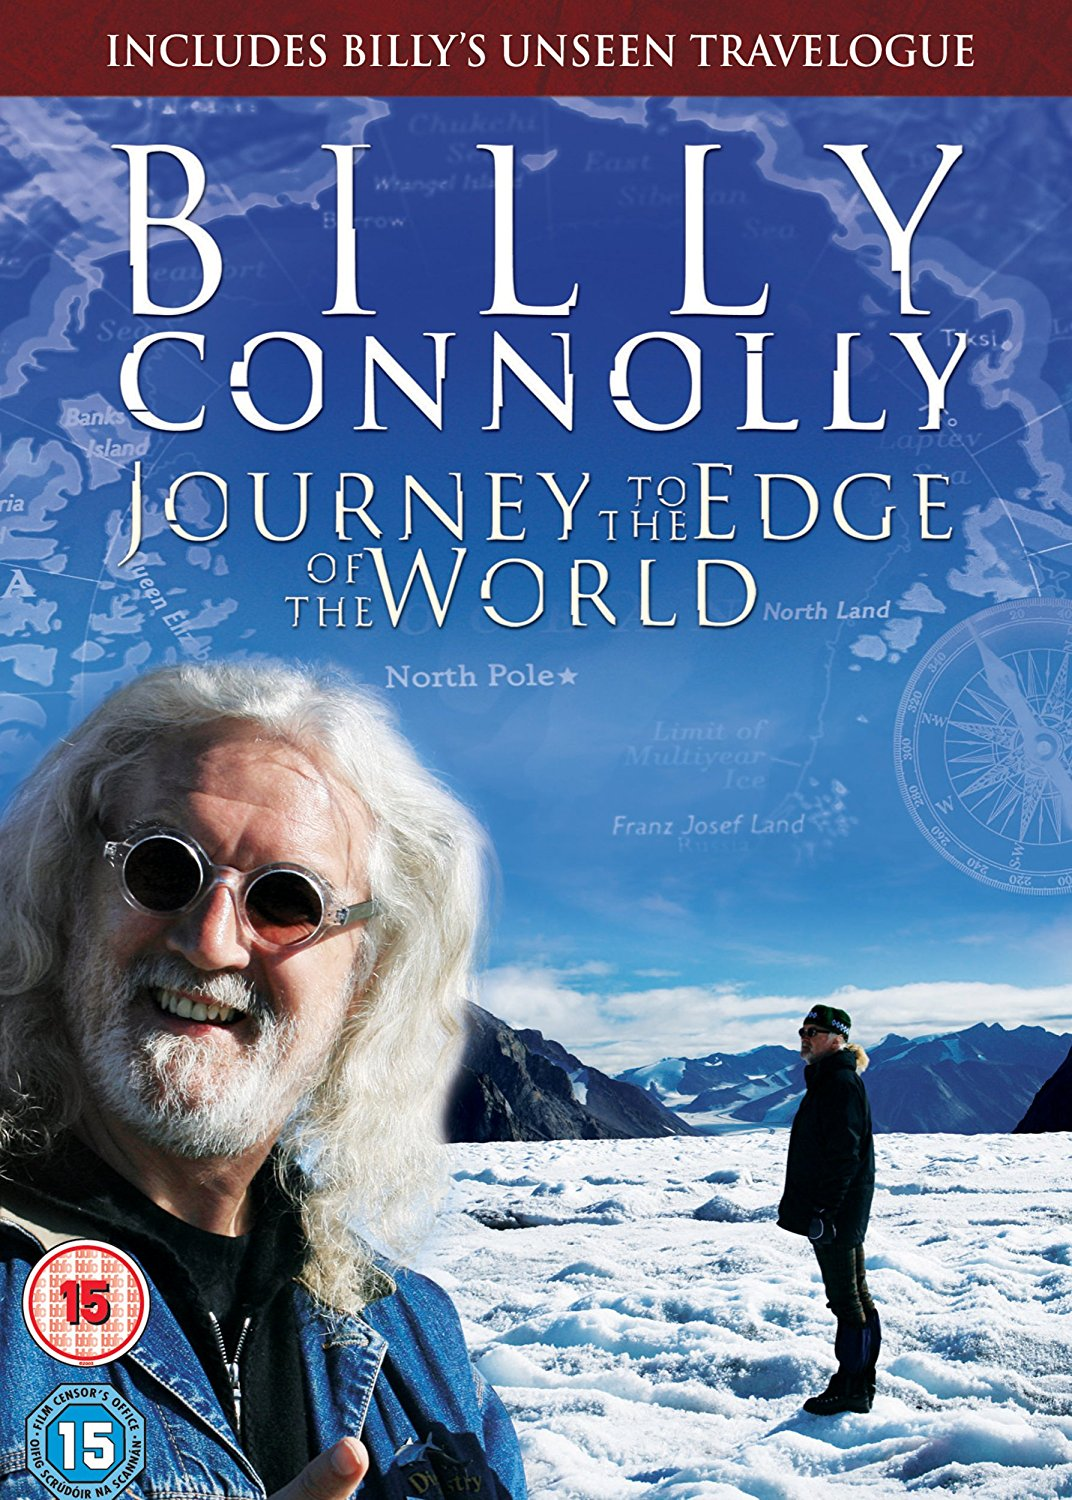 Billy connolly was it something i said online dating